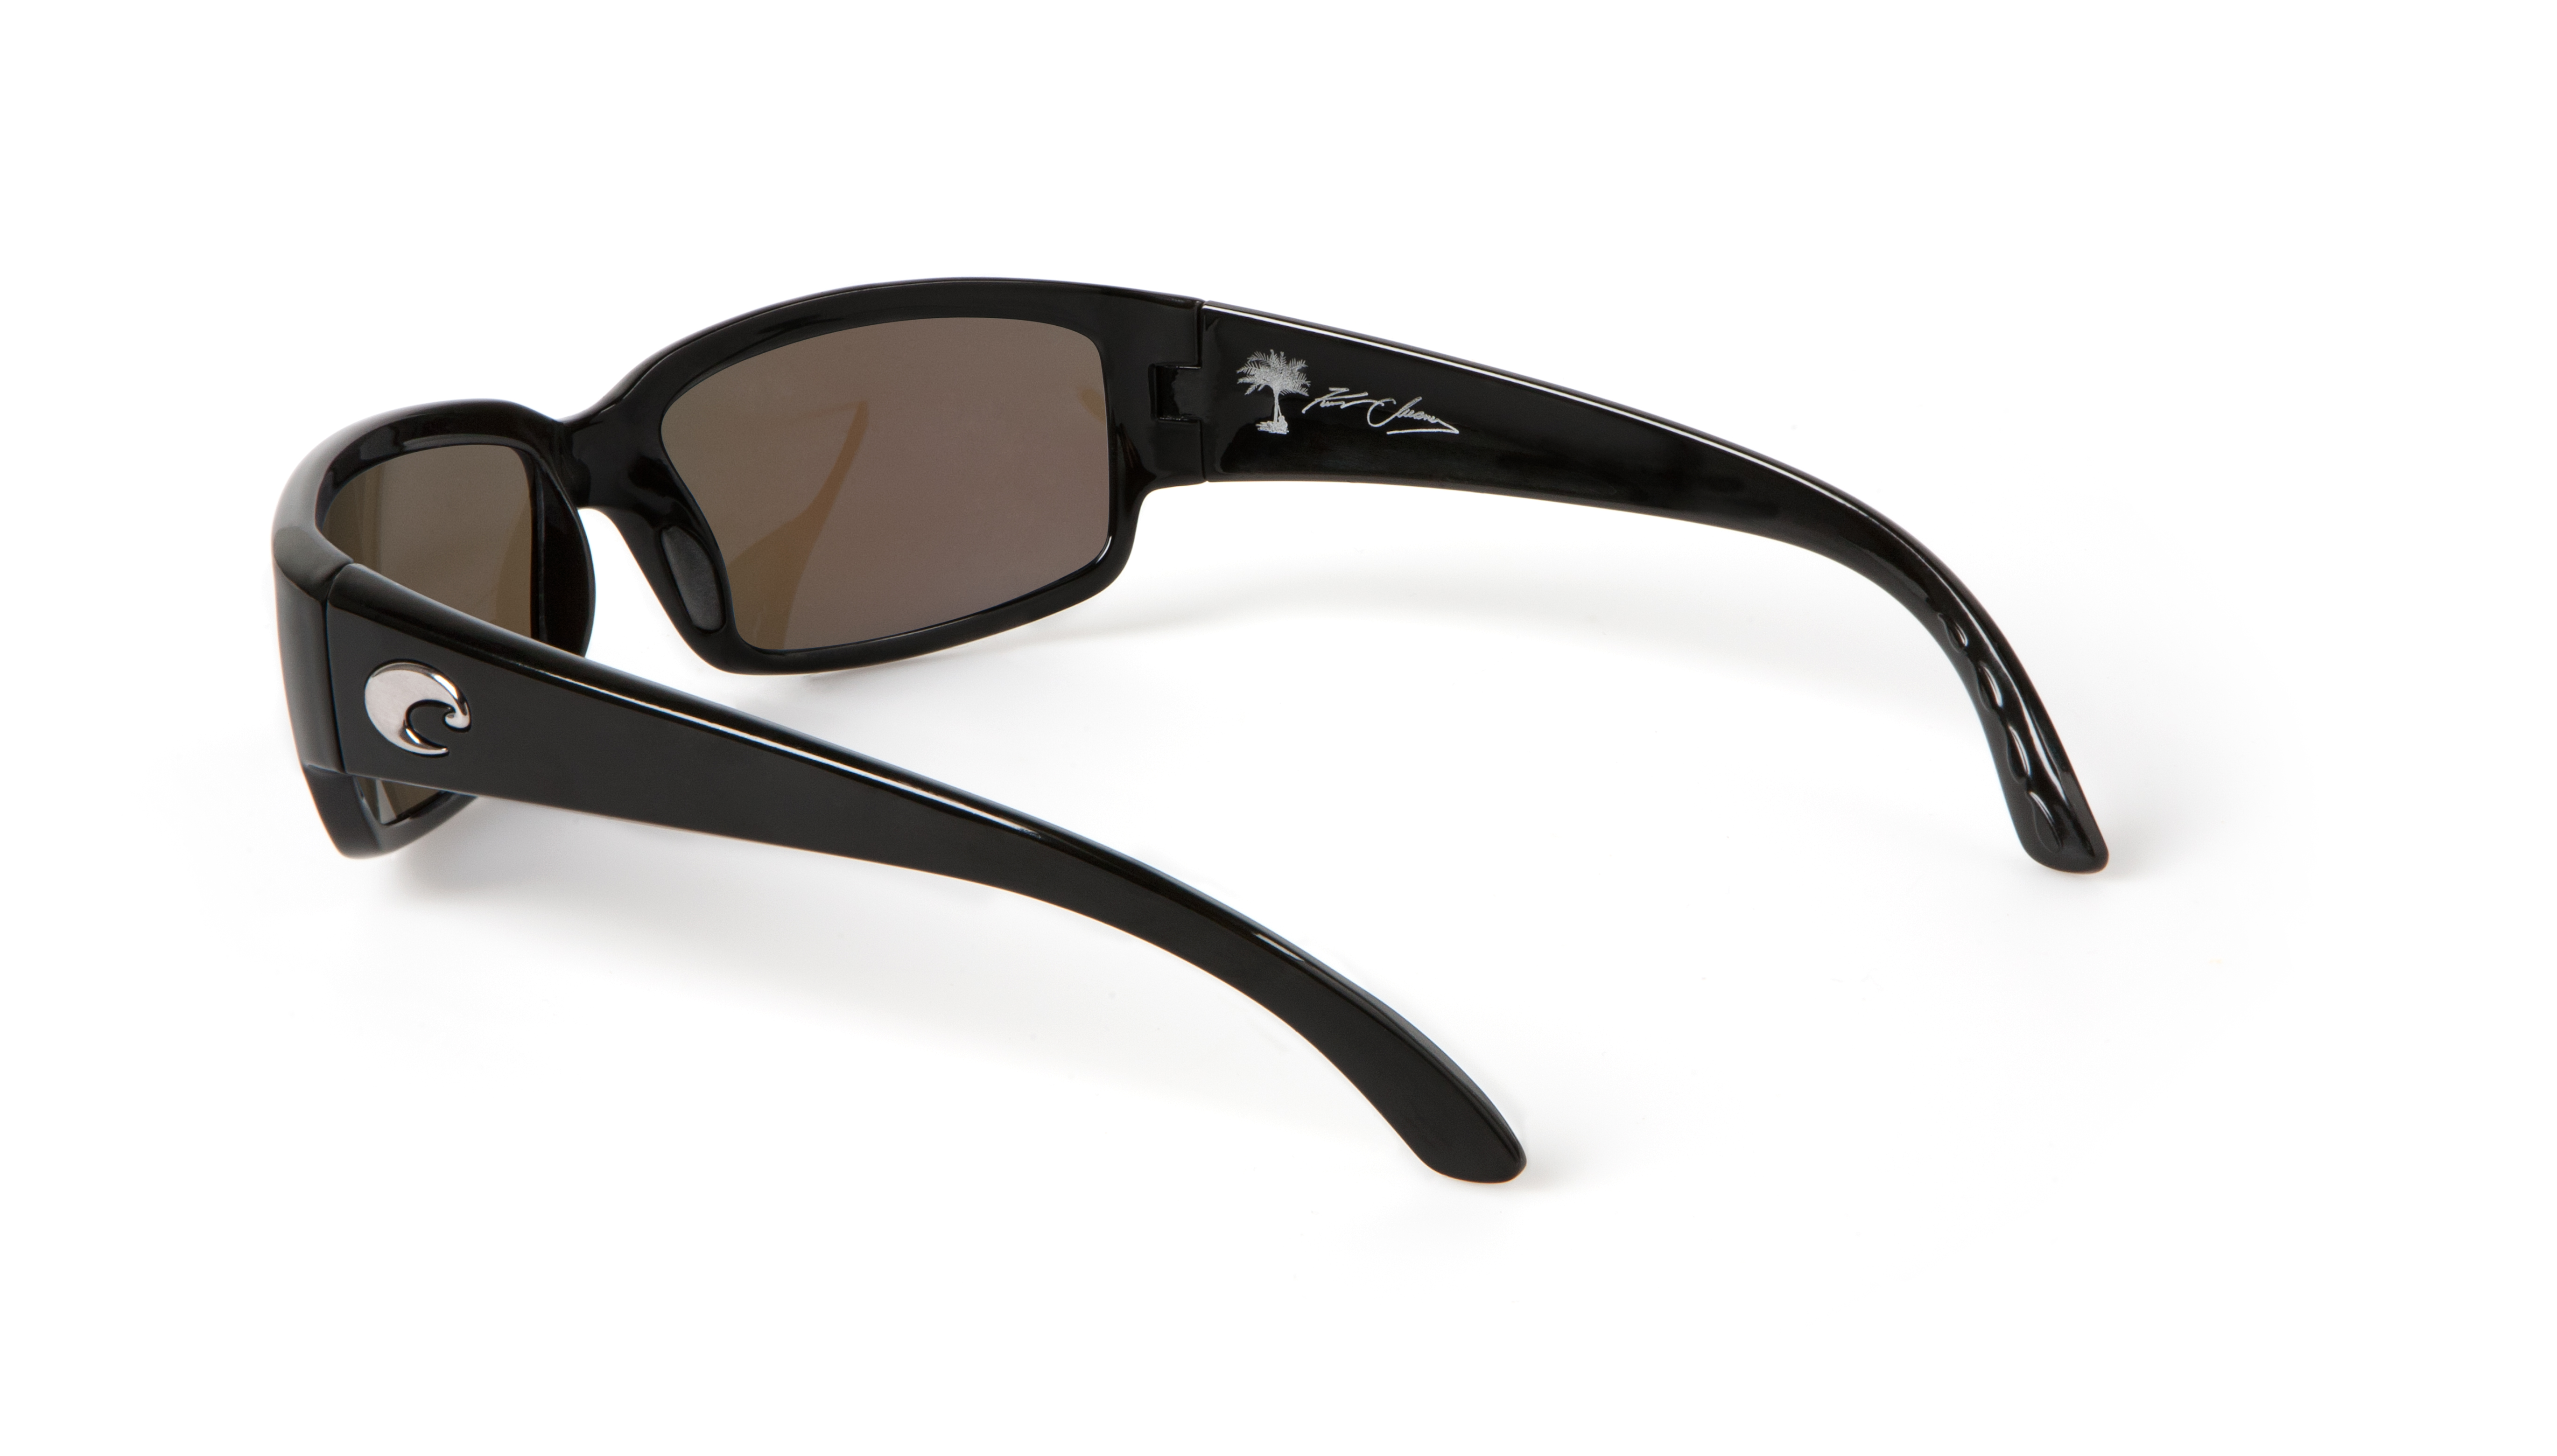 Kenny Chesney's new Limited Edition Costa style Caballito shown in black with blue mirror lenses starts at $129 and benefits the Coastal Conservation Association.